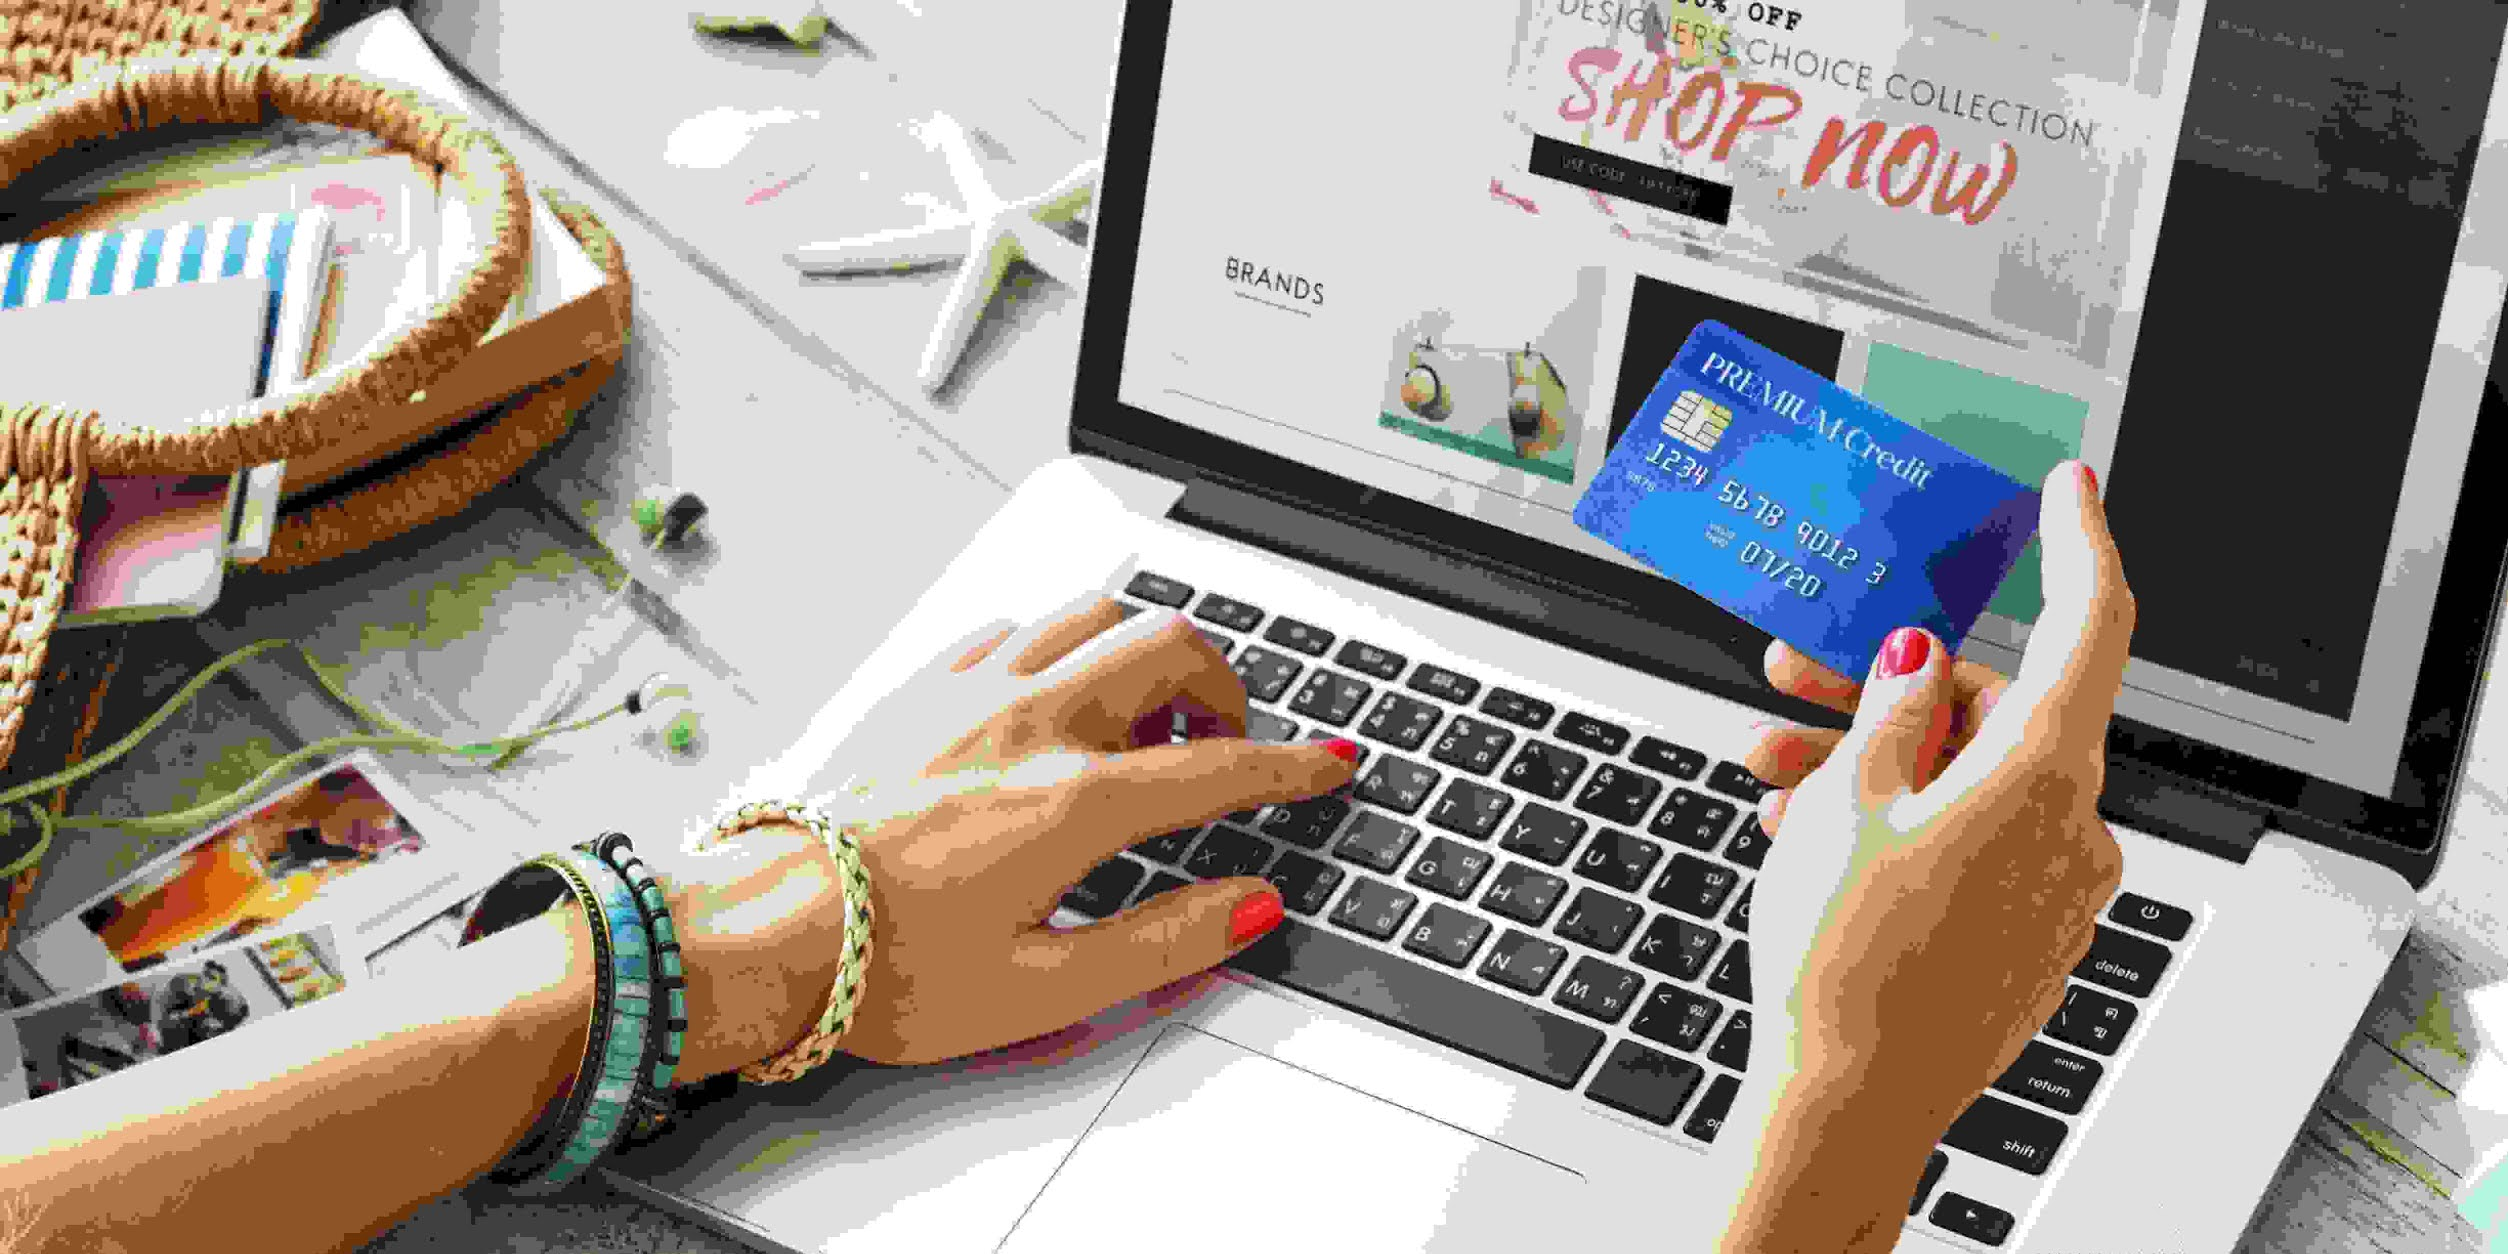 online shopping captions, shopping quotes, shopping lines for Instagram, captions for IG